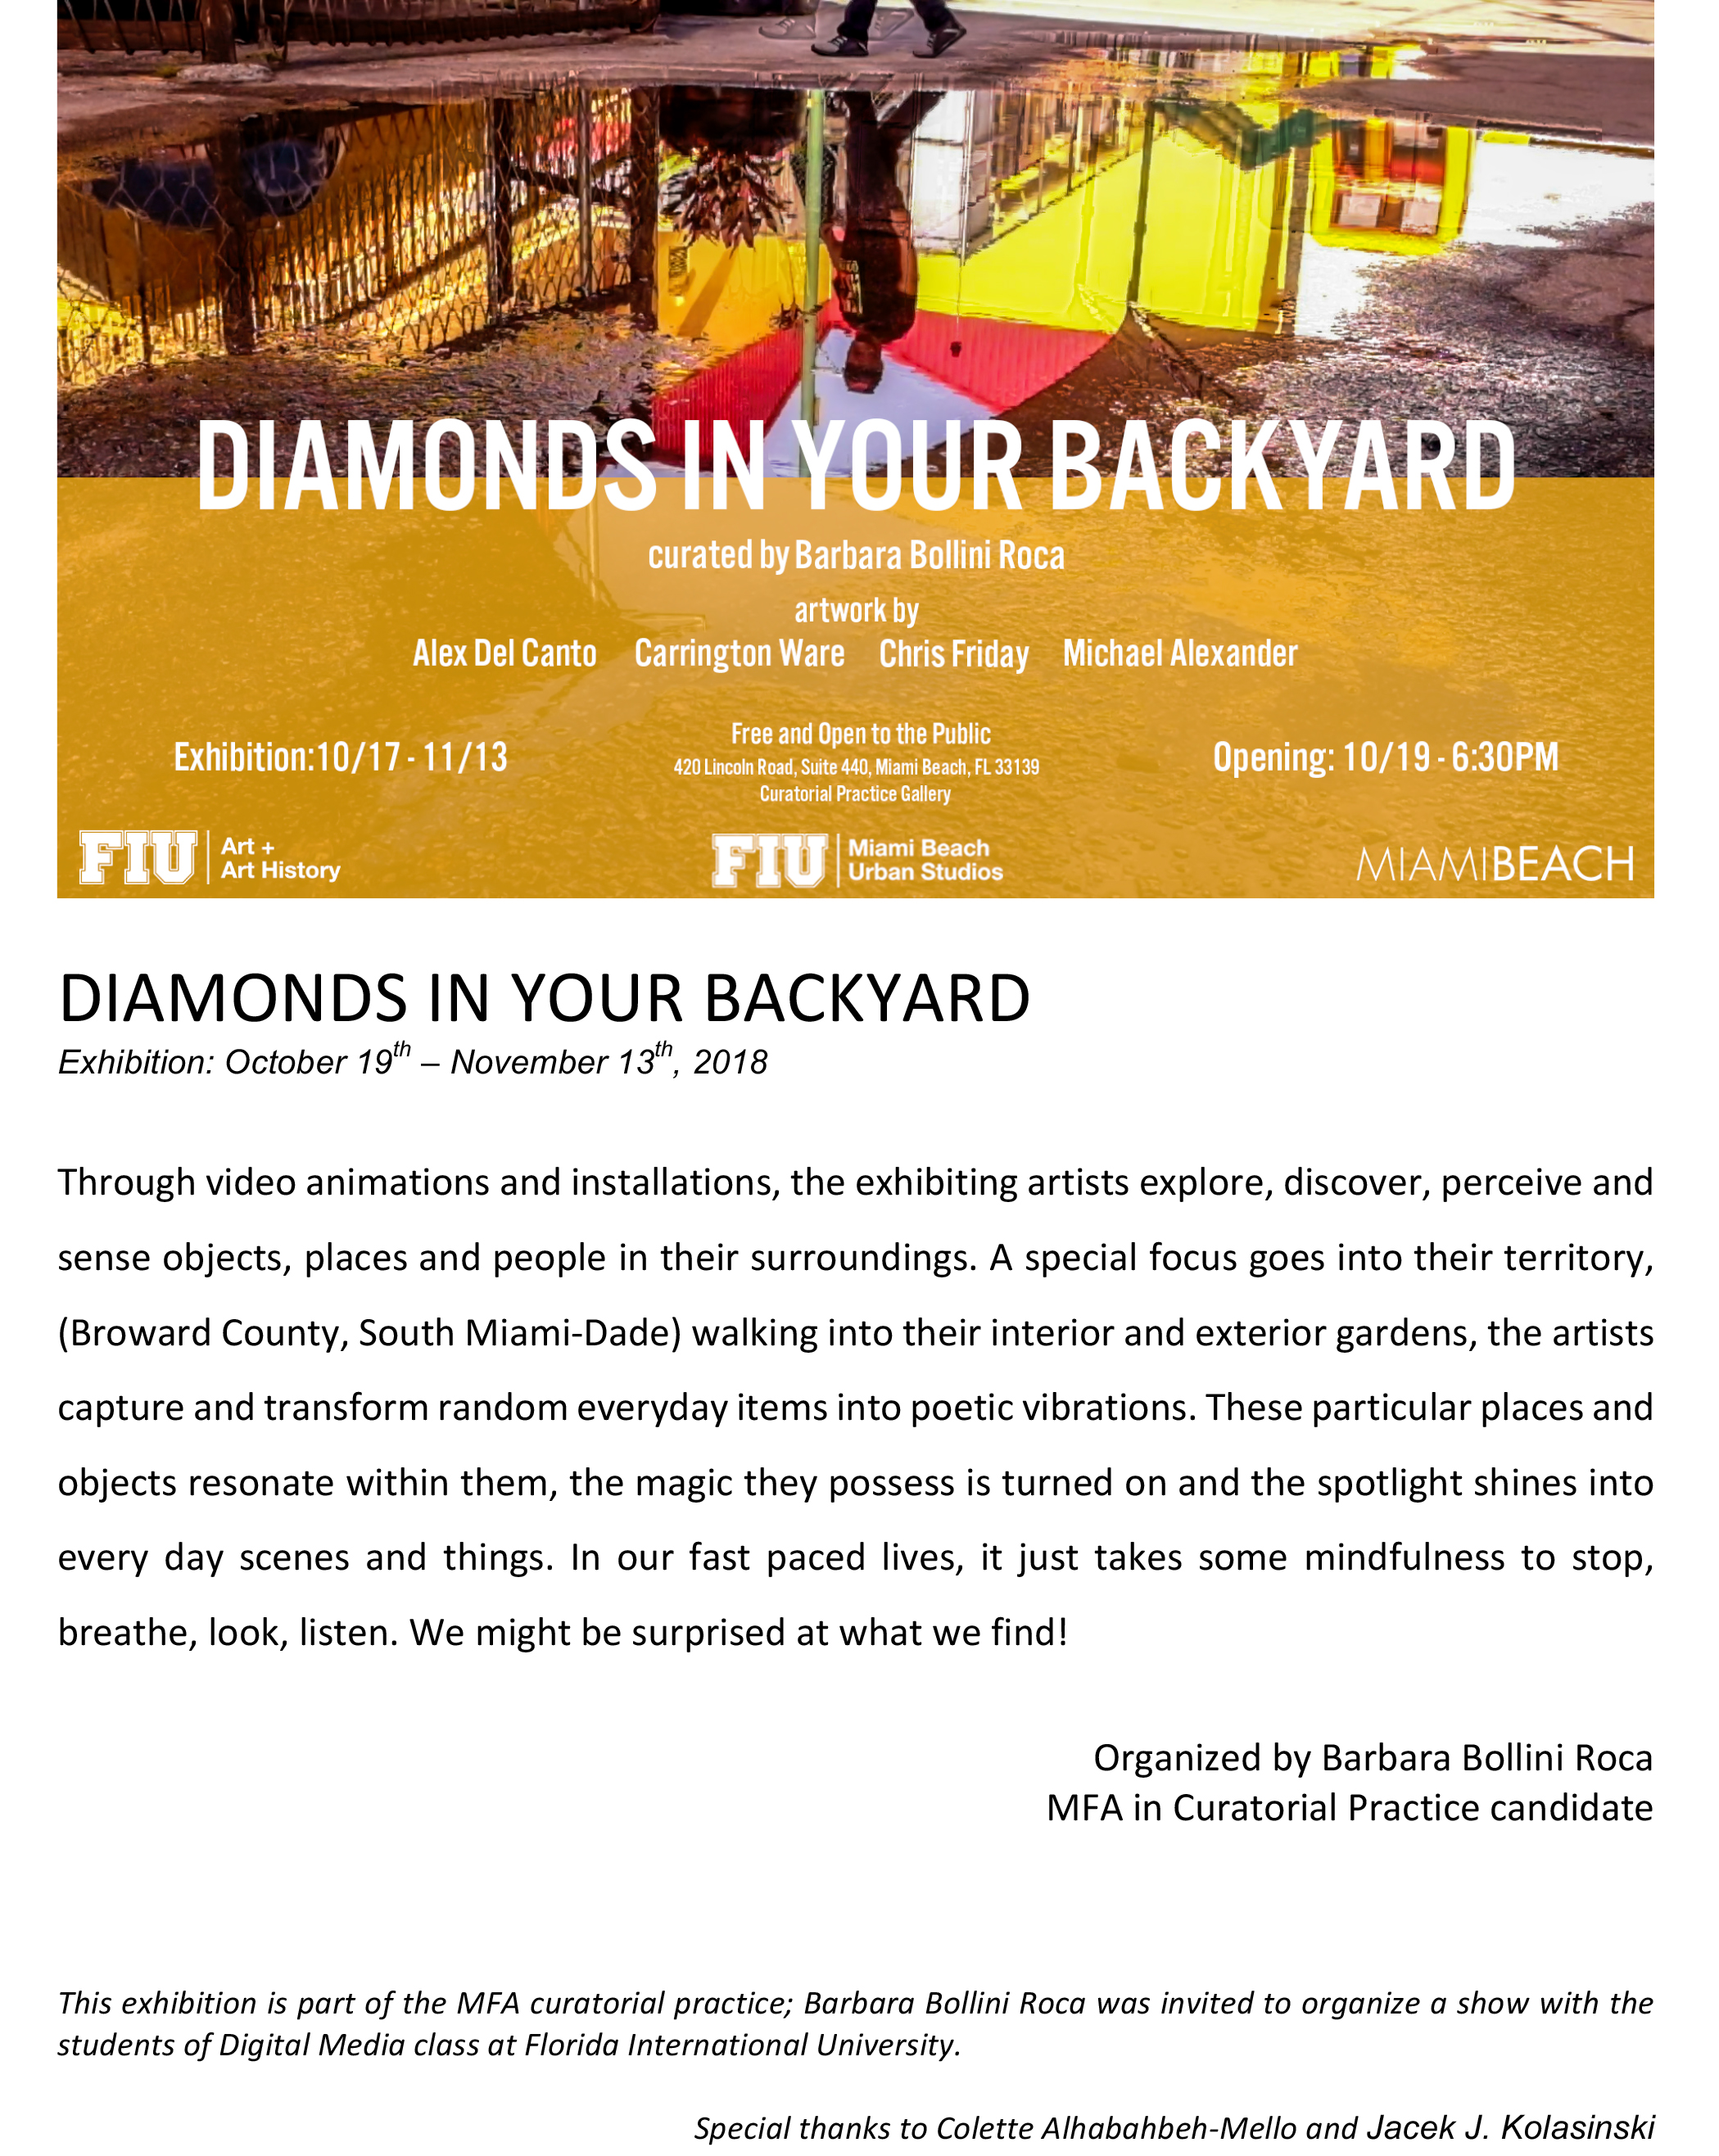 DIAMONDS IN YOUR BACKYARD_2_mail.jpg